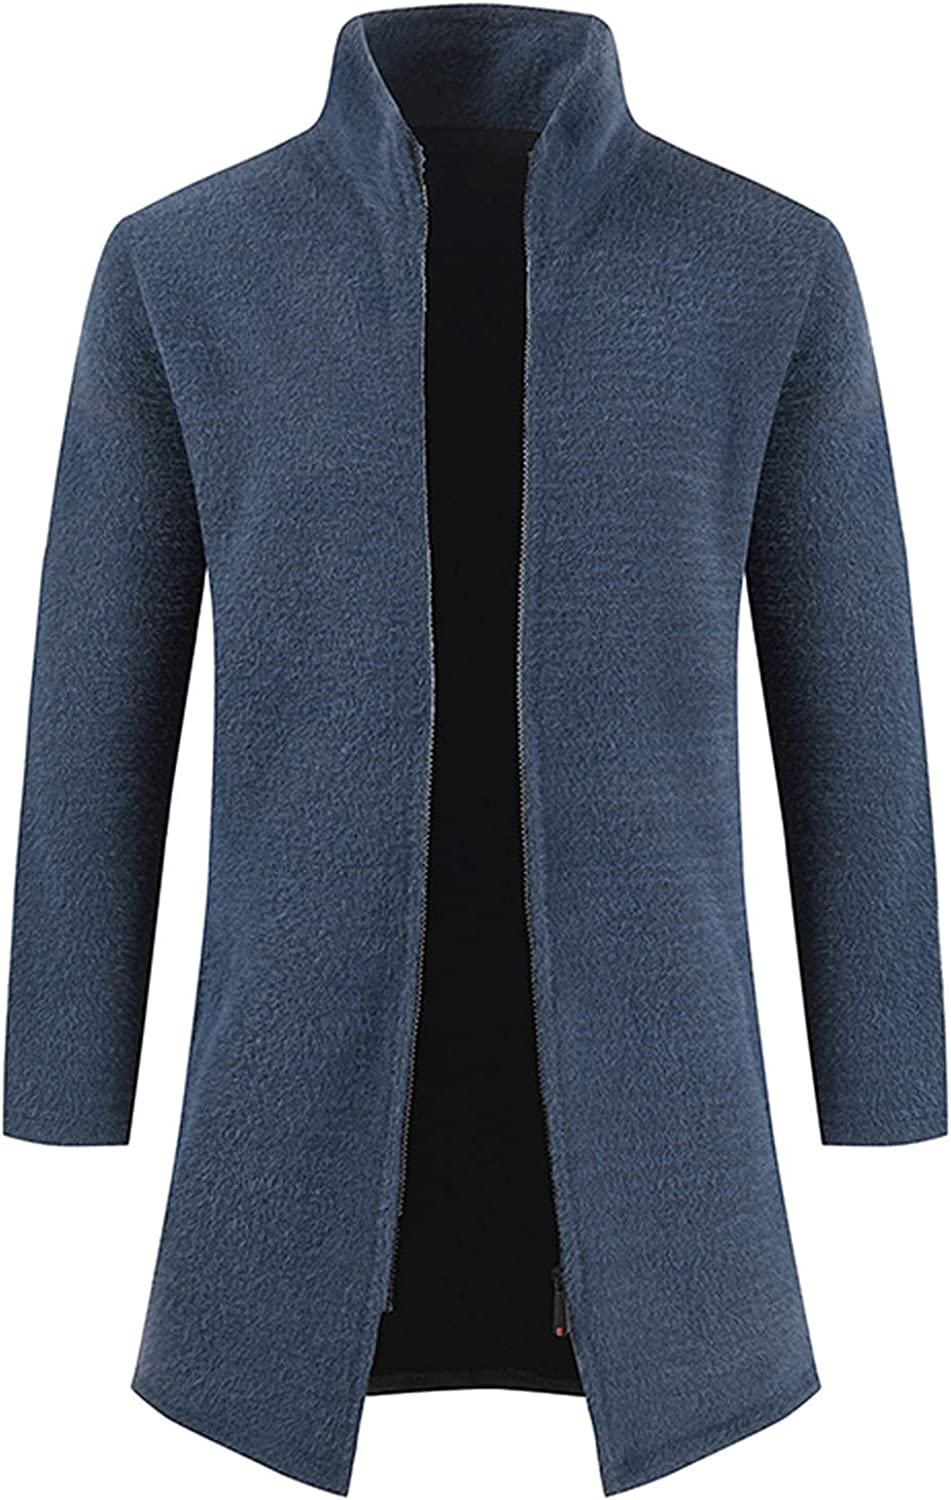 Huangse Mens Sweaters Casual Slim Full Zip Thick Knitted Cardigan Solid Color Stand Collar Cardigan Sweaters with Pockets